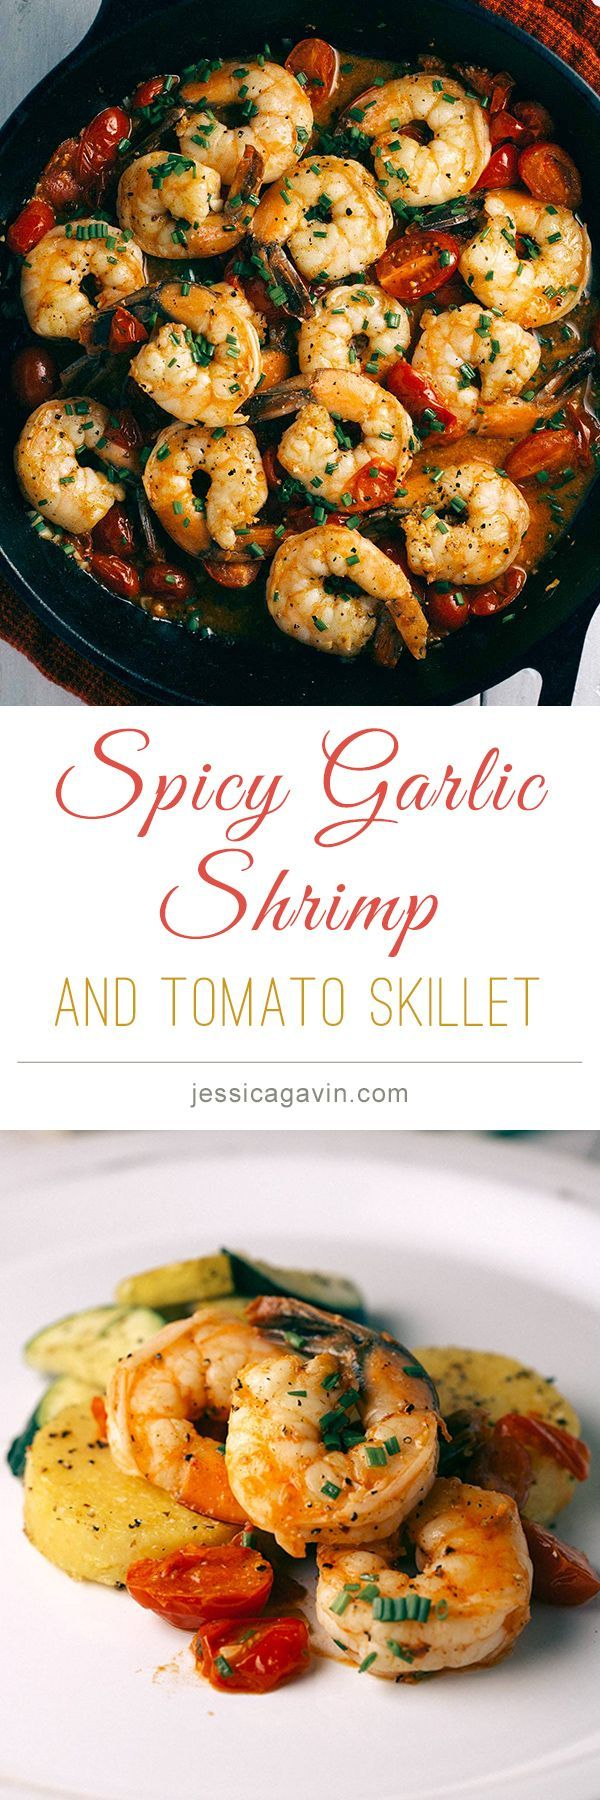 Spicy Garlic Jumbo Shrimp and Tomato Skillet | jessicagavin.com #seafoodrecipes #appetizer